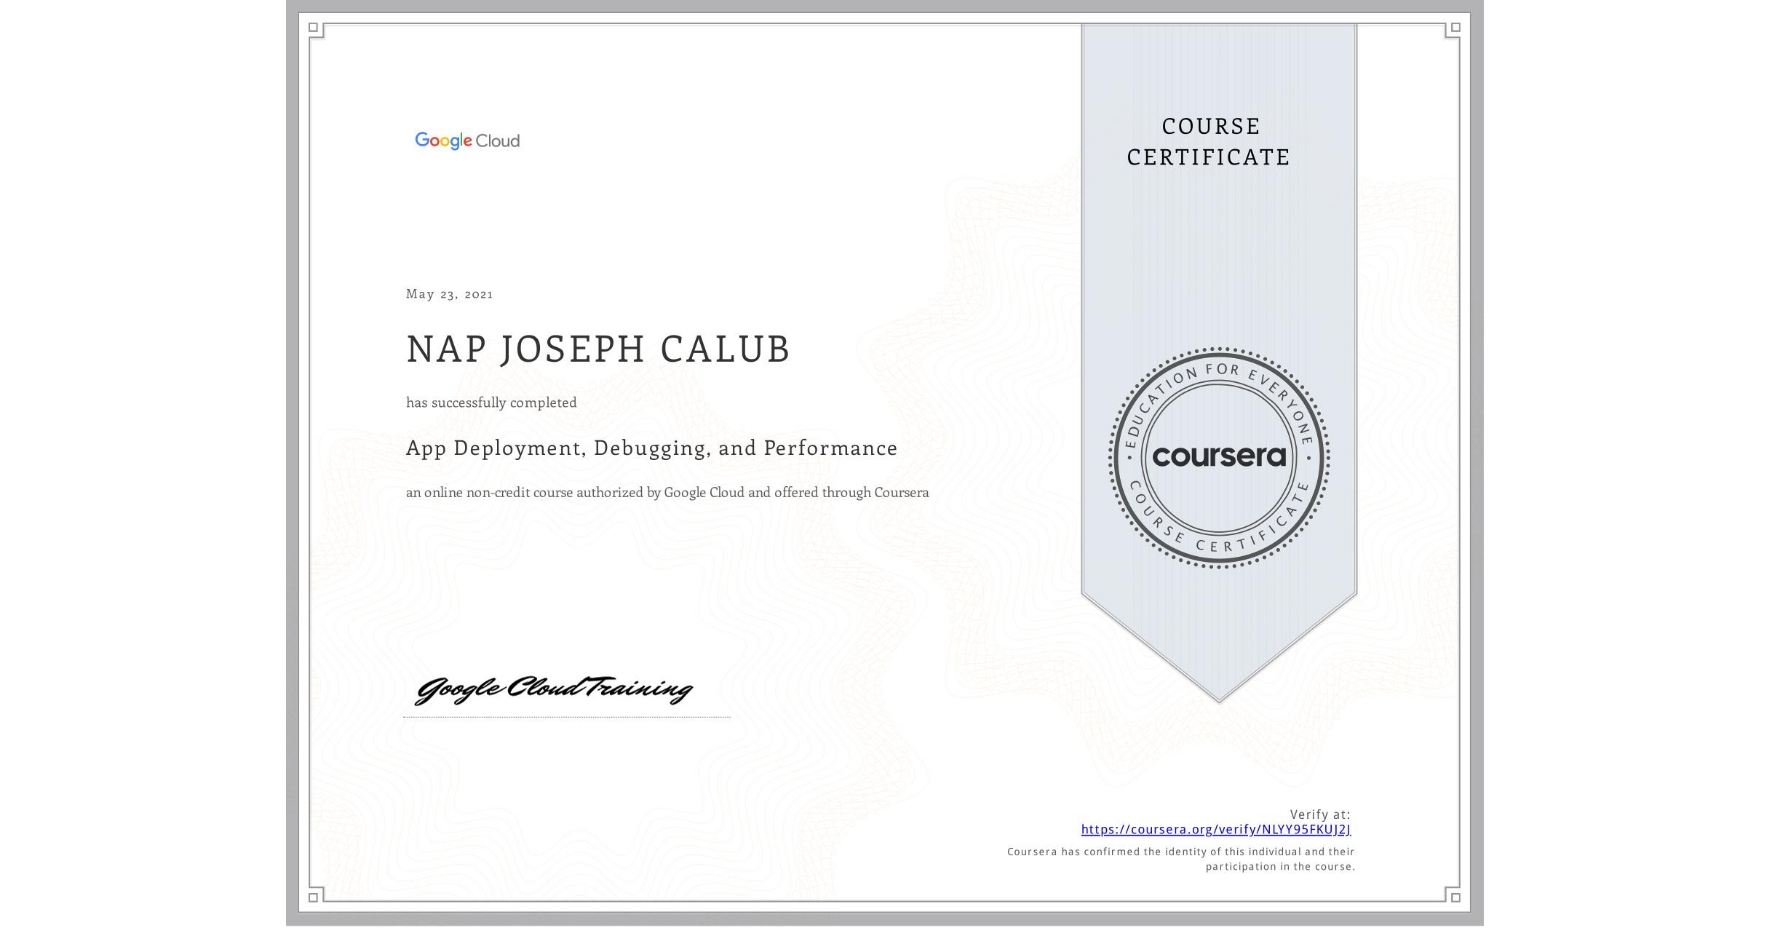 View certificate for NAP JOSEPH  CALUB, App Deployment, Debugging, and Performance, an online non-credit course authorized by Google Cloud and offered through Coursera